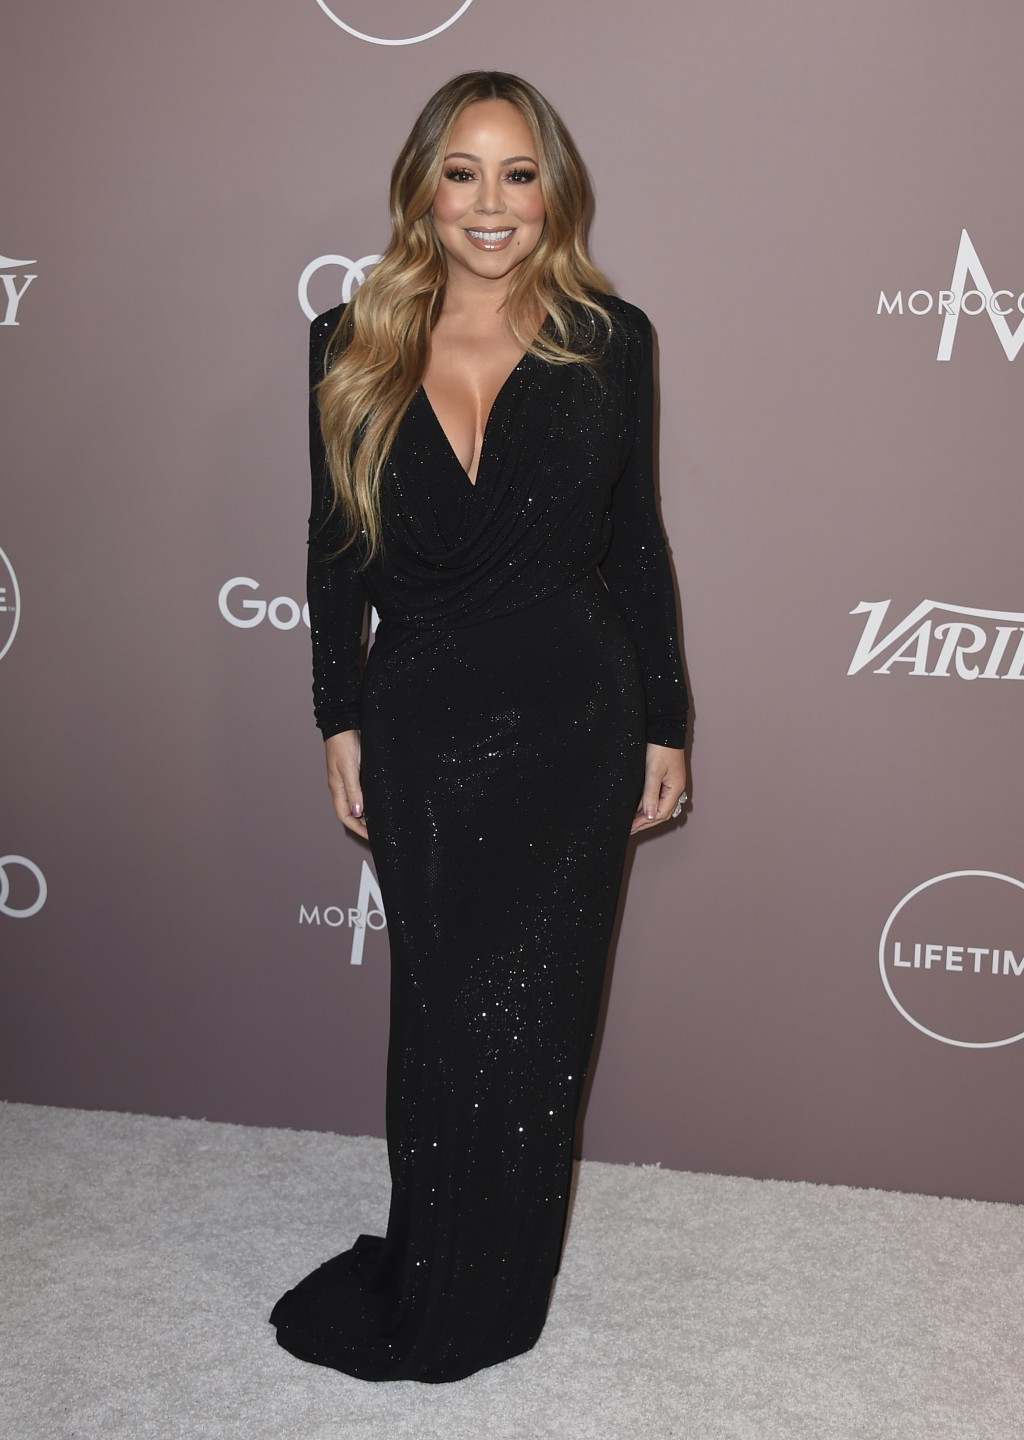 Mariah Carey arrives at Variety's Power of Women on Friday, Oct. 11, 2019, at the Beverly Wilshire hotel in Beverly Hills, Calif. (Photo by Jordan Str